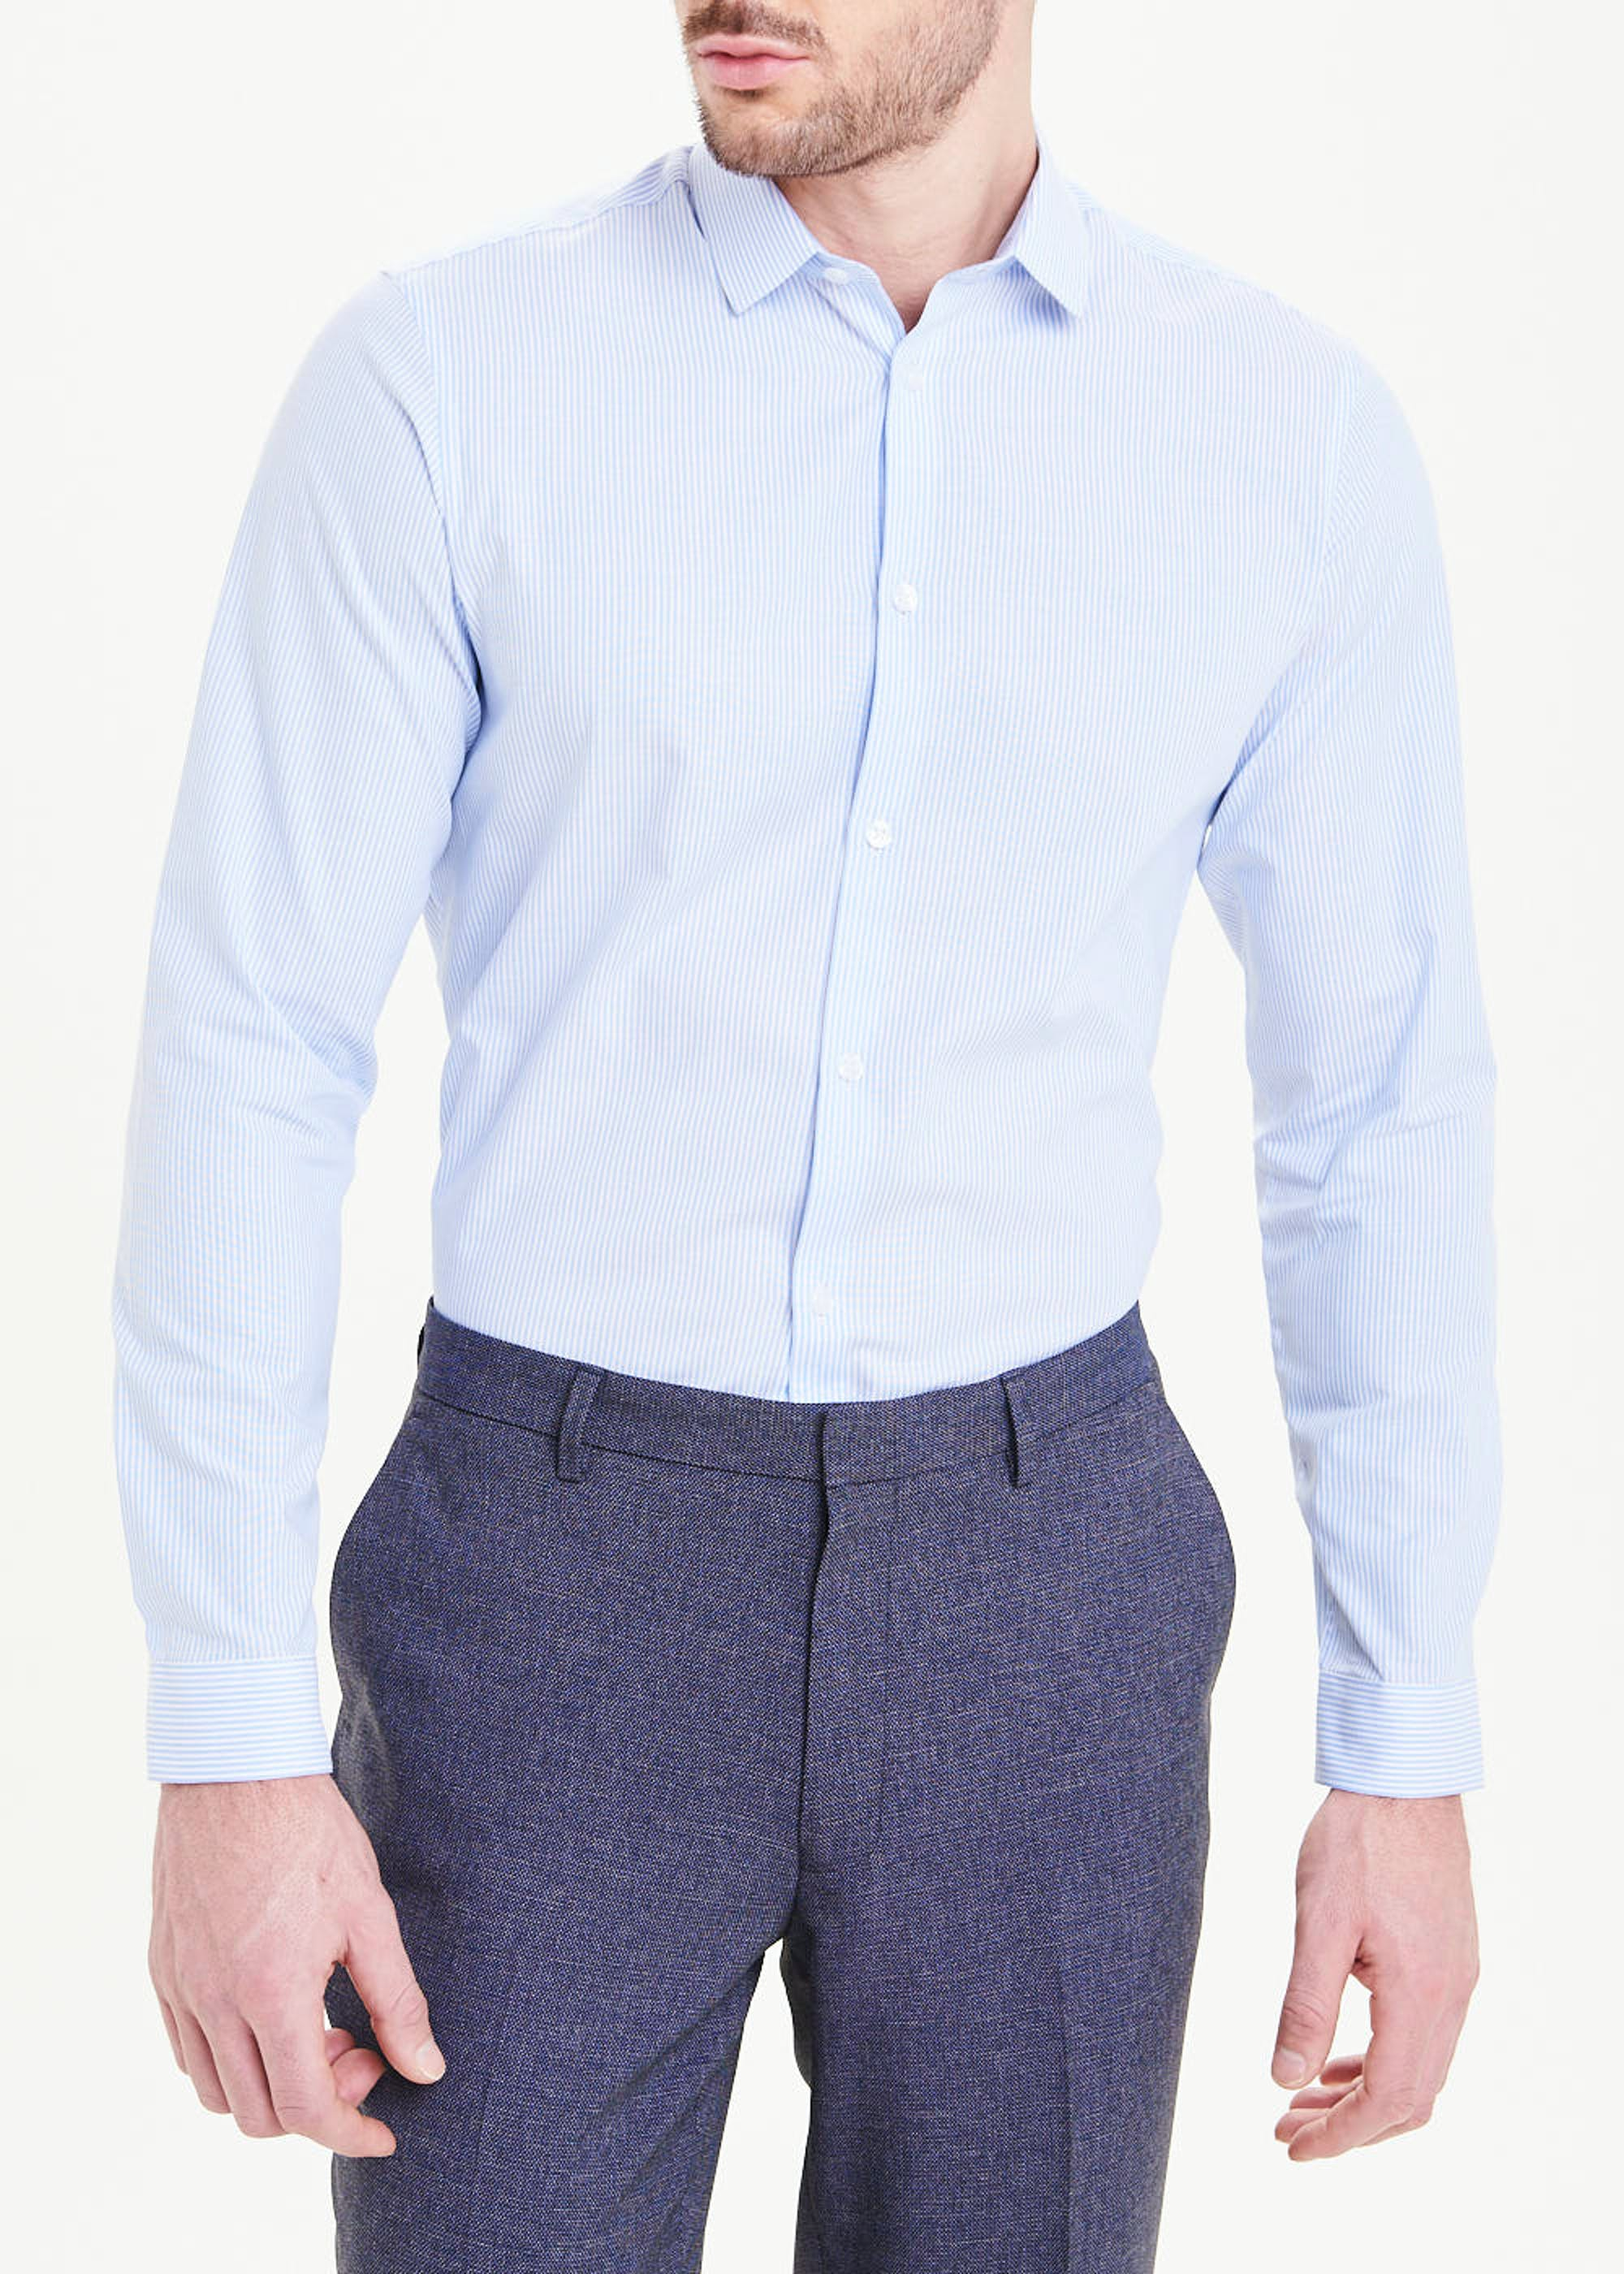 Taylor & Wright Long Sleeve Slim Fit Stripe Shirt Blue kYyVic